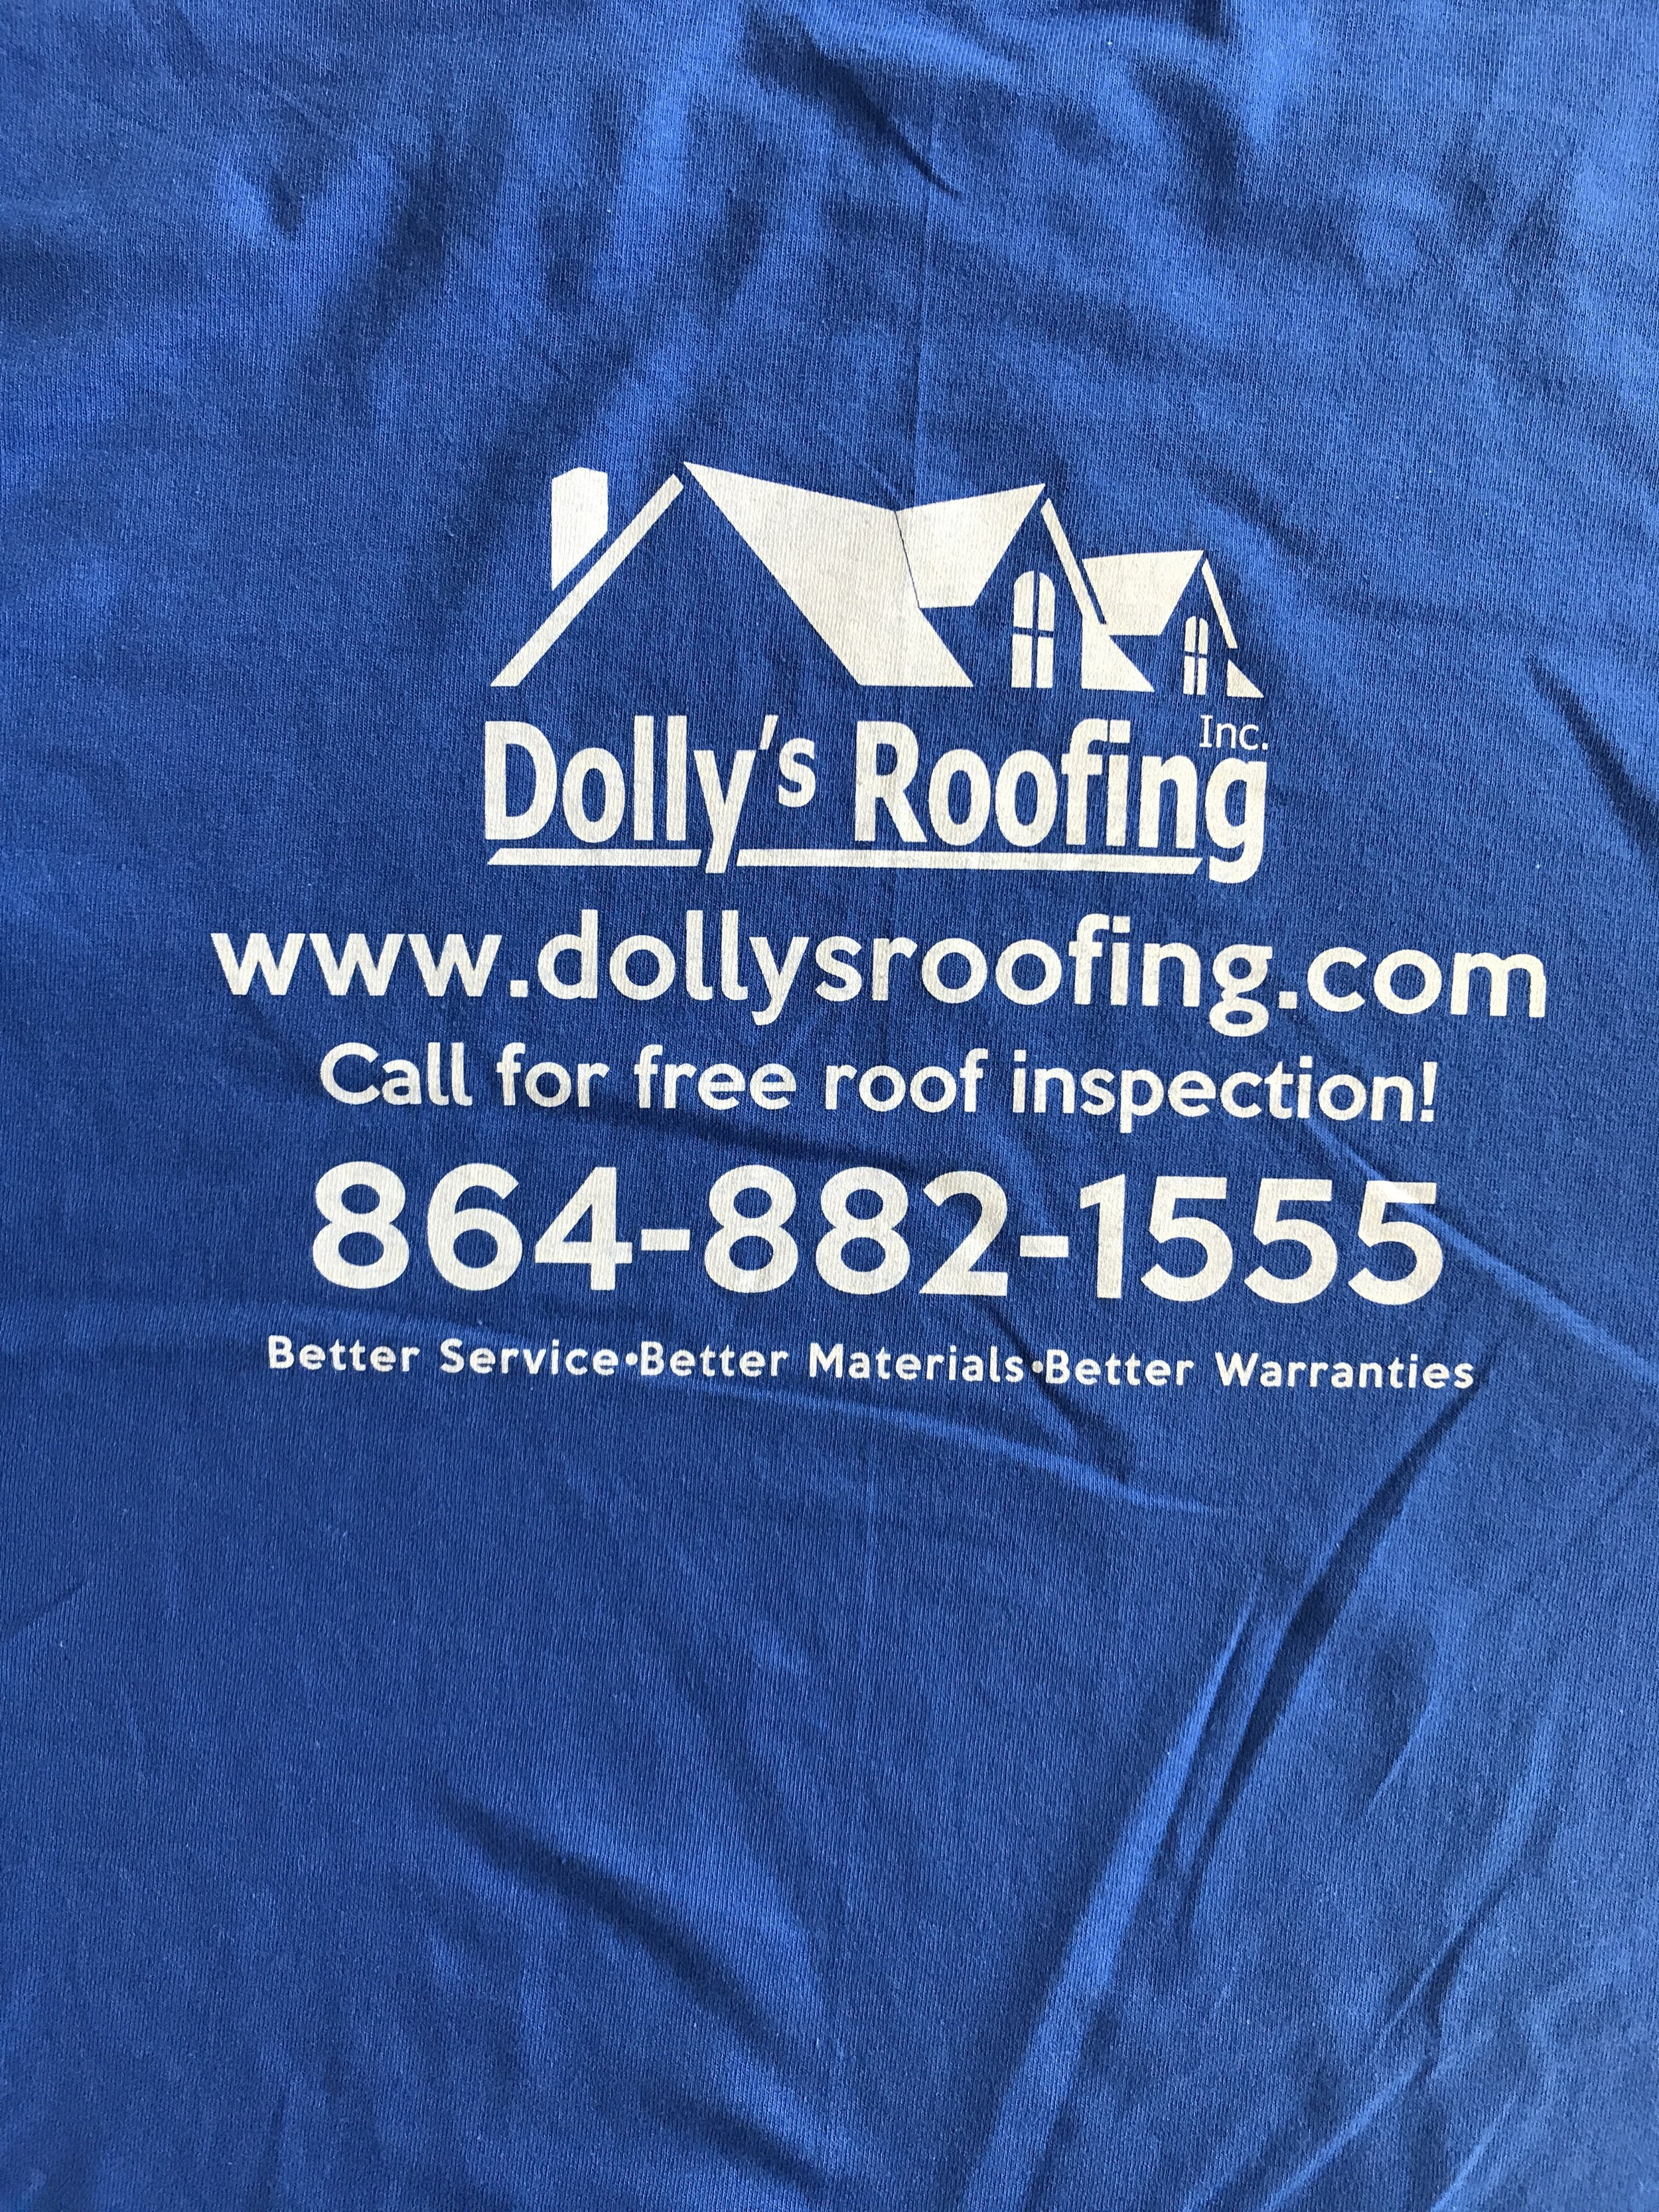 dolly roofing back 2.JPG